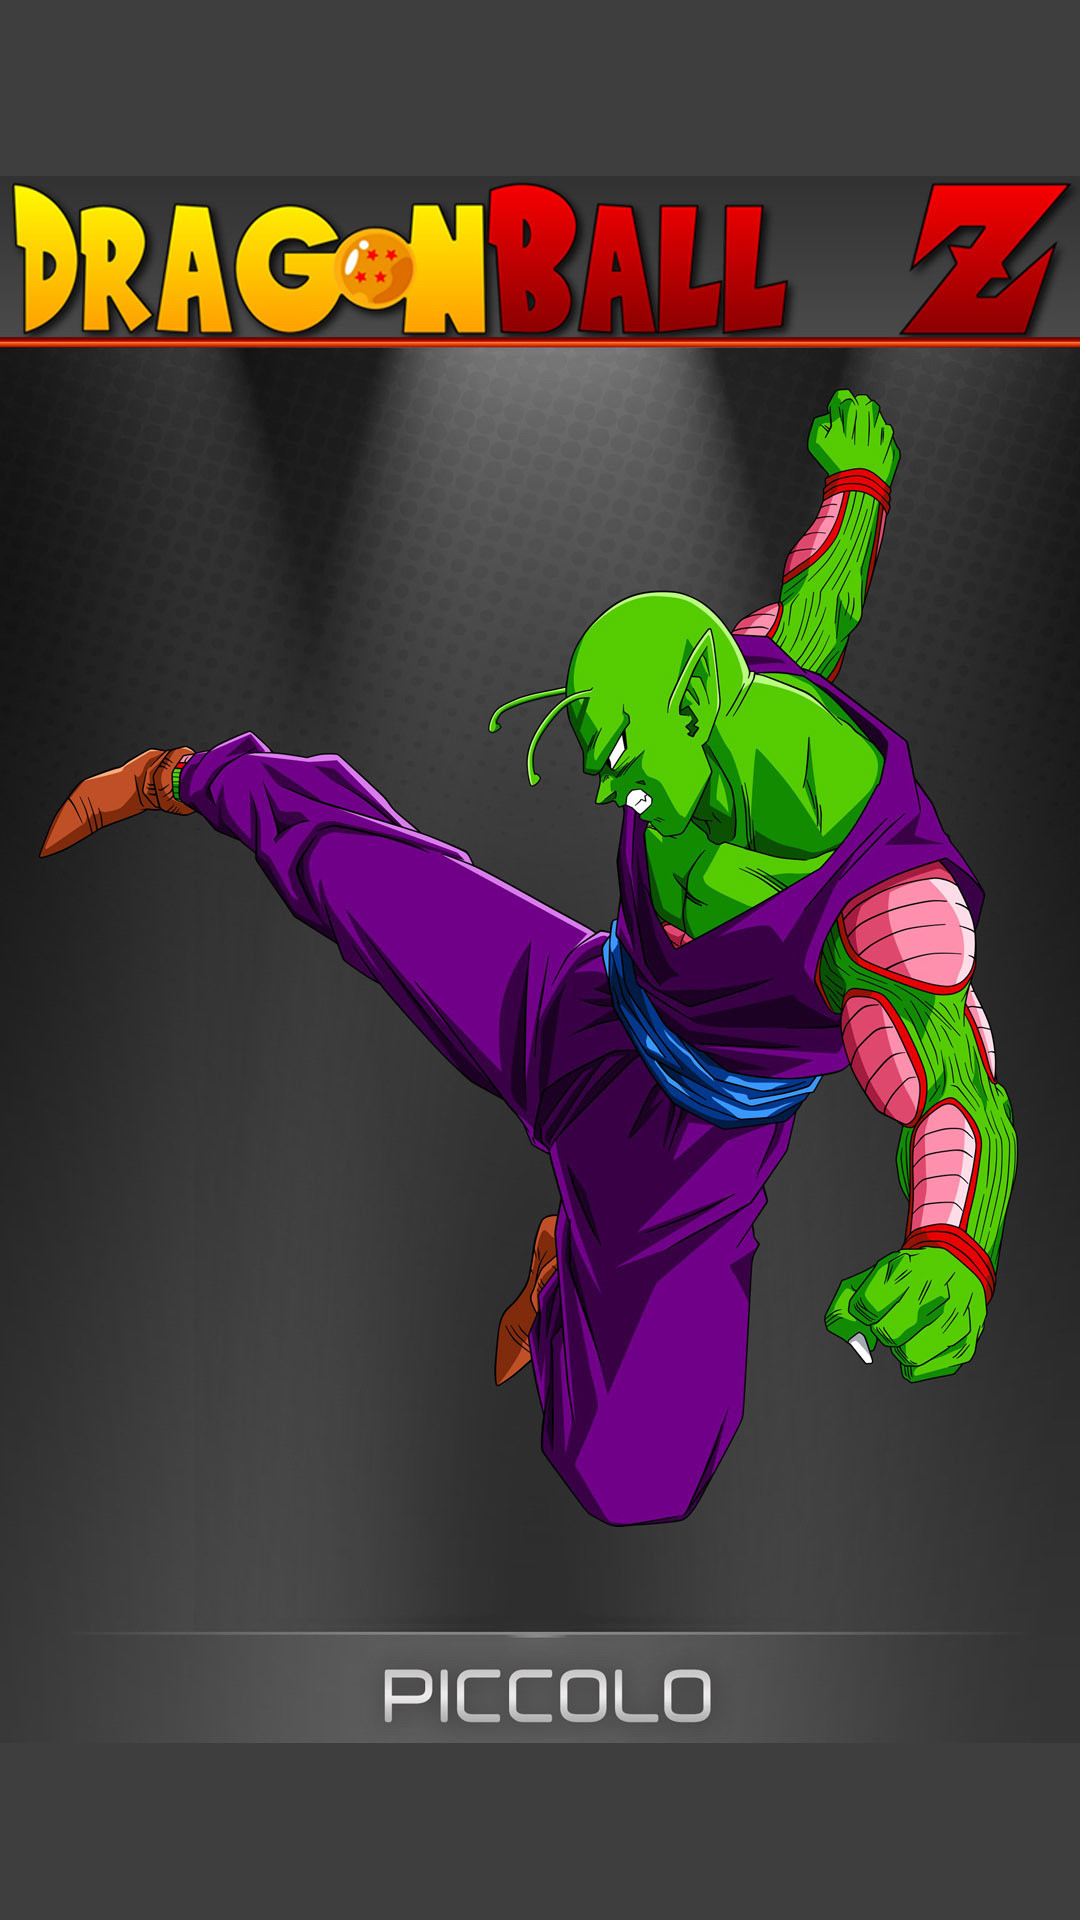 Dragon ball z piccolo wallpaper 68 images - Images dragon ball z ...